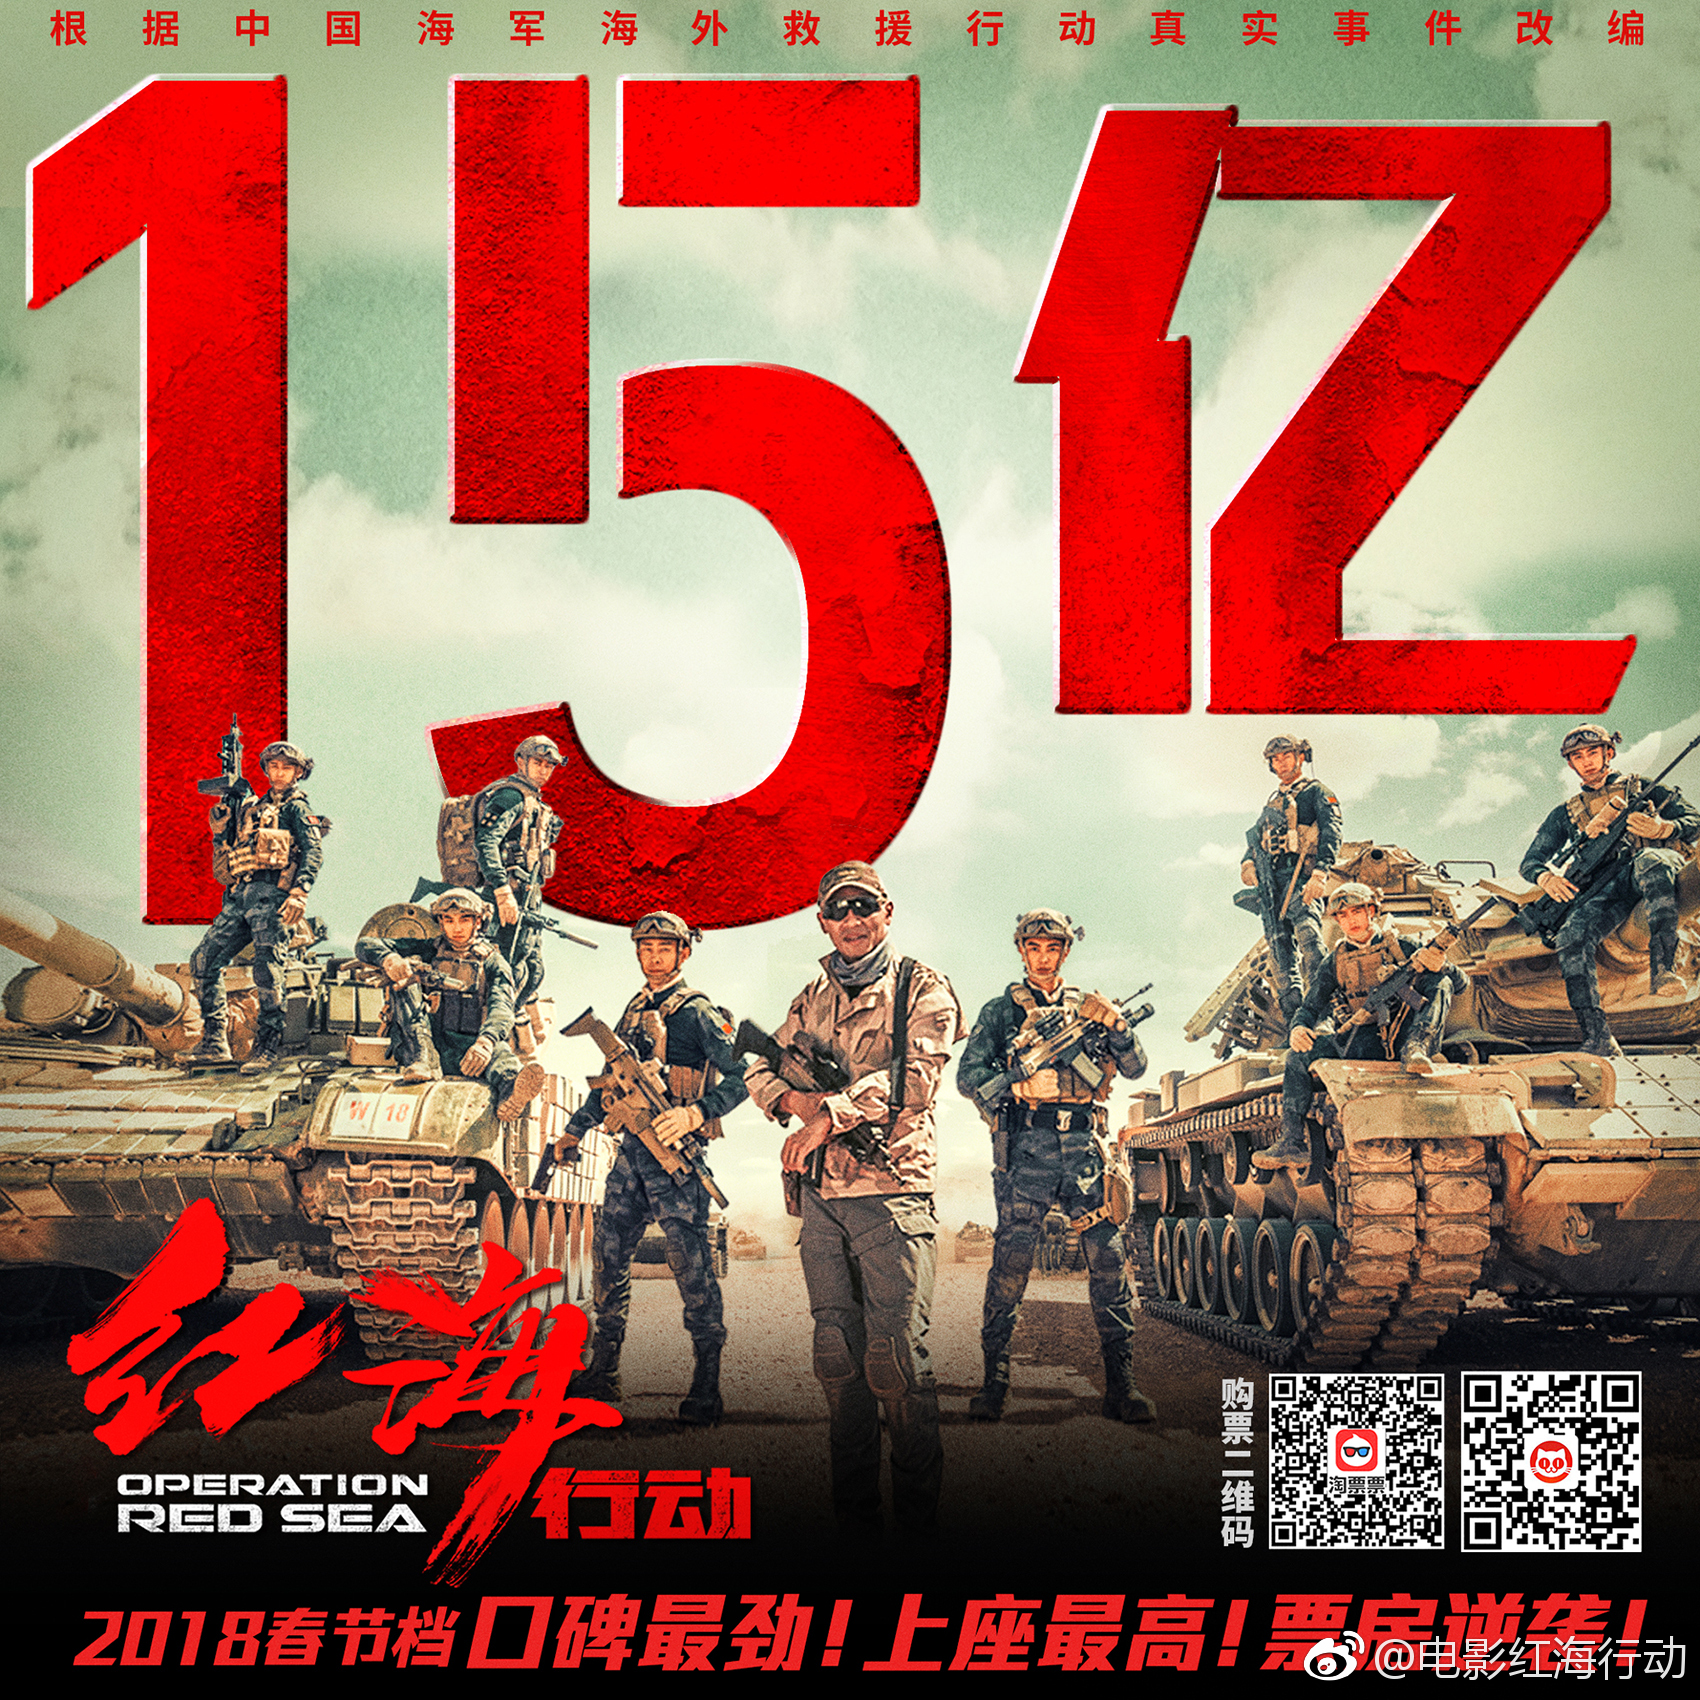 Why Is Operation Red Sea Winning The Post Spring Festival Film War